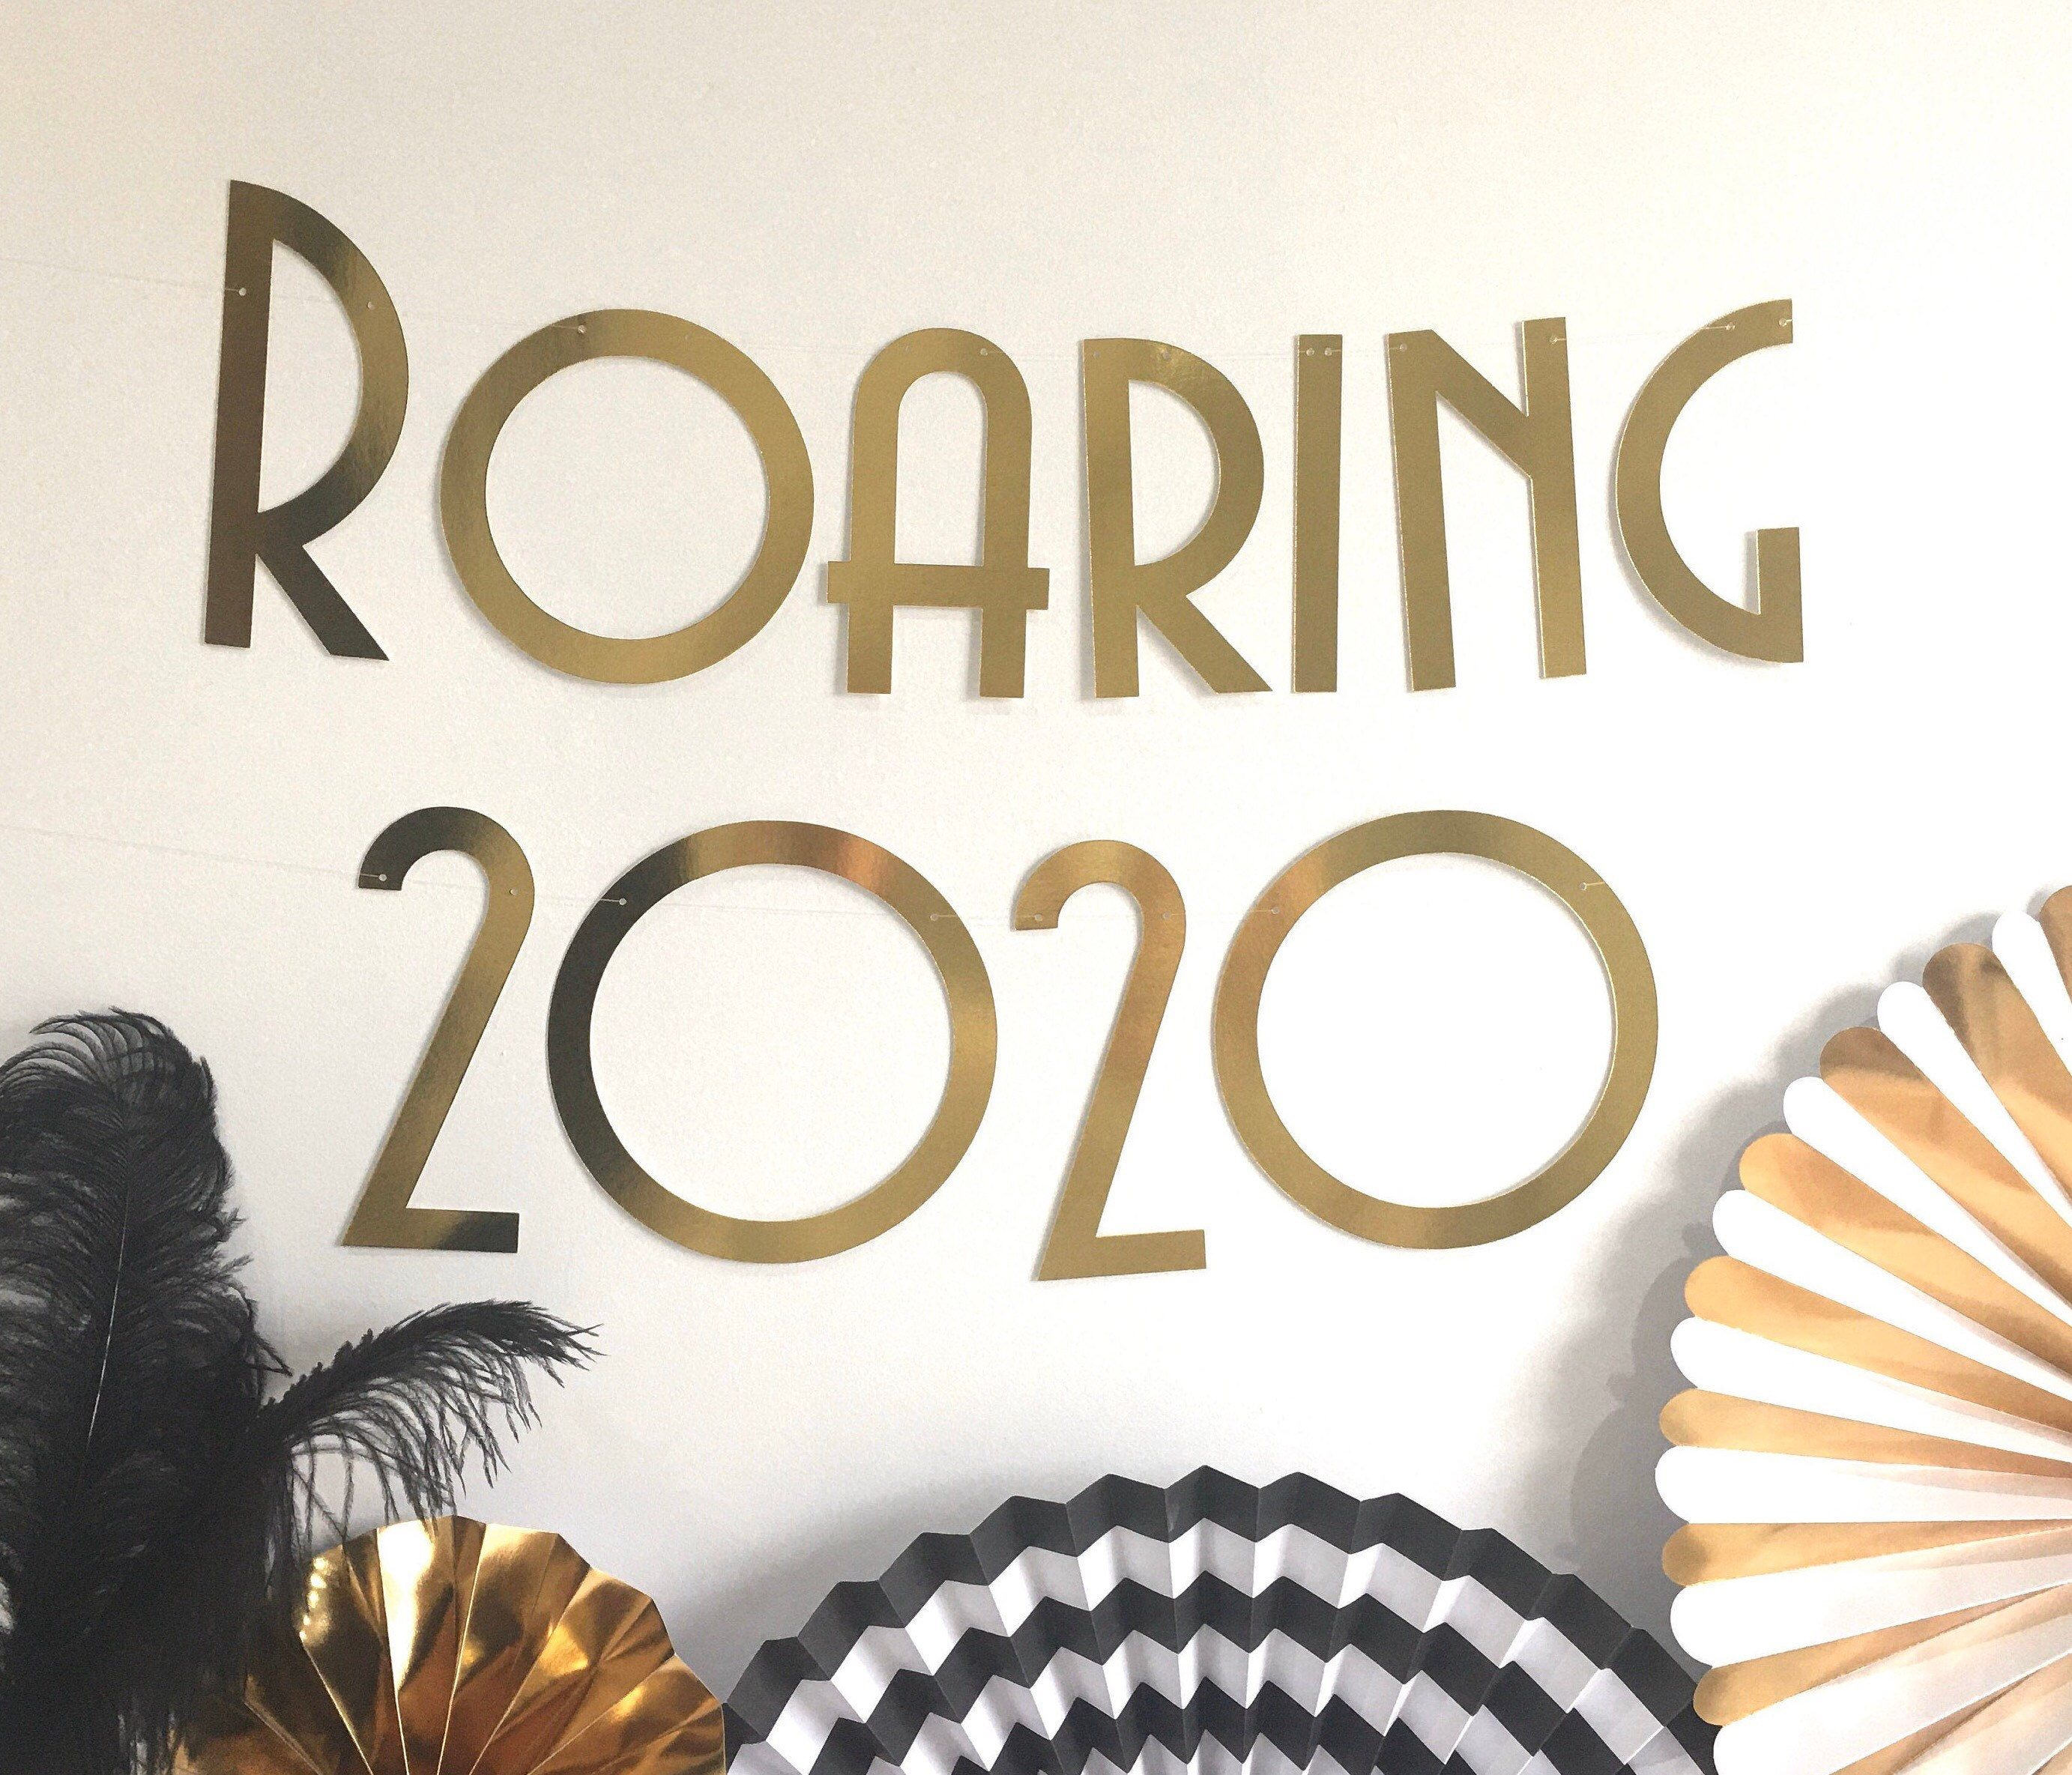 2020 New Years Eve Banner, Roaring 20's them party New